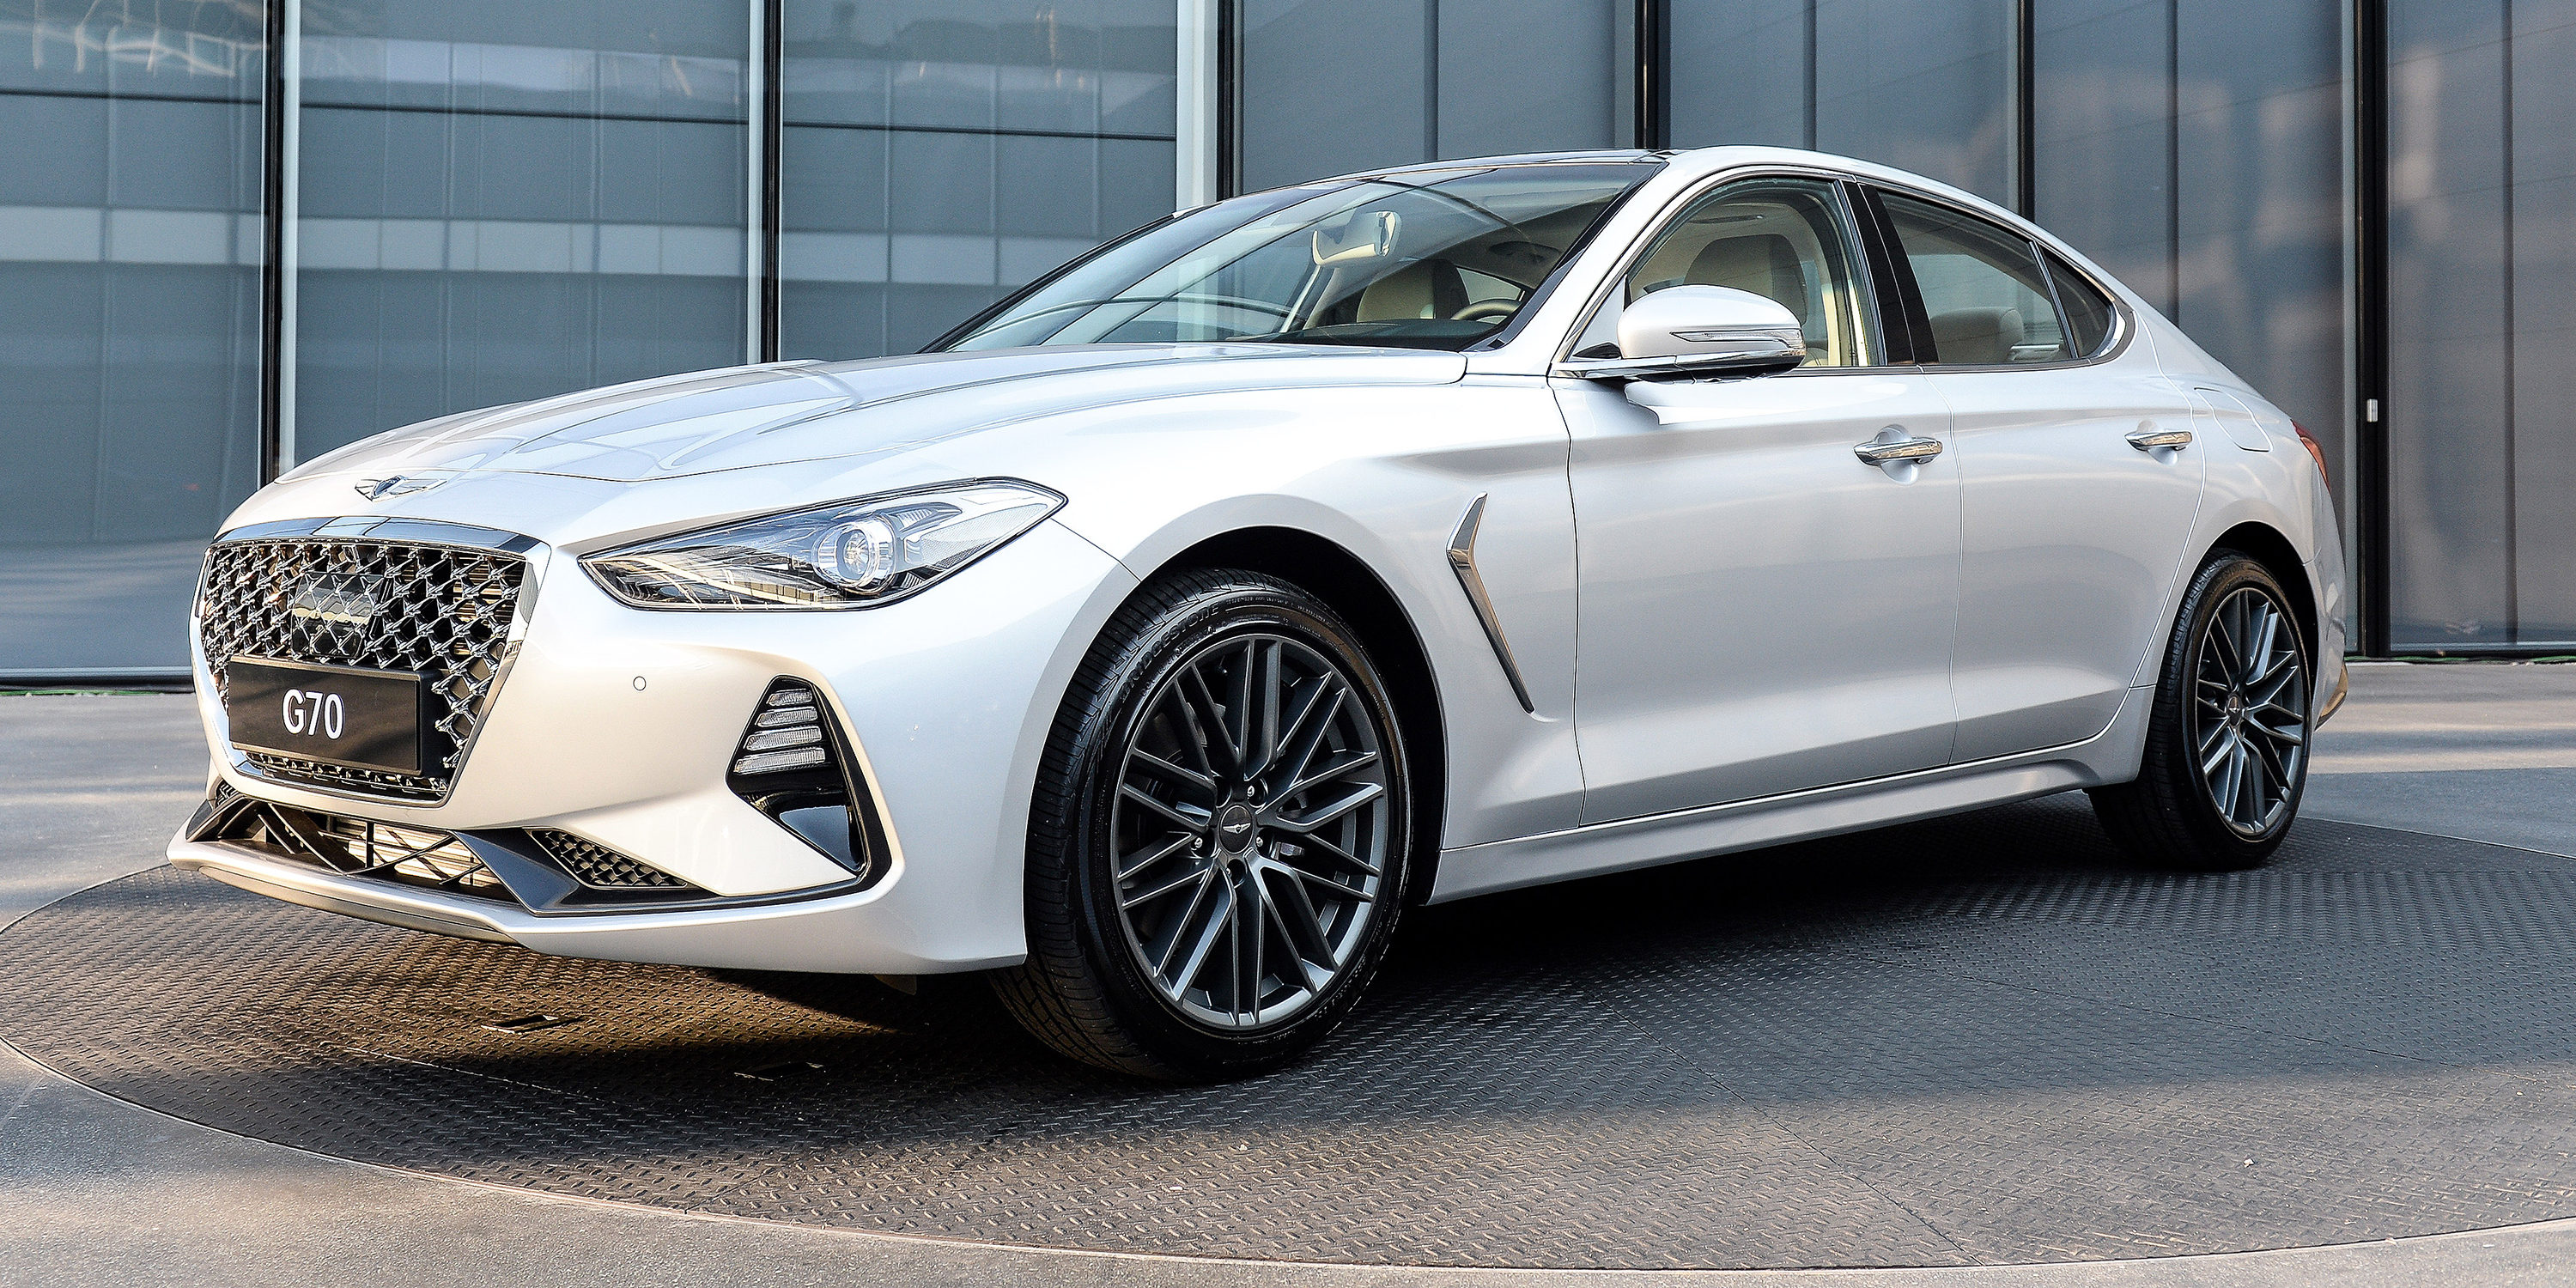 Hyundai Genesis G70 photo 181571